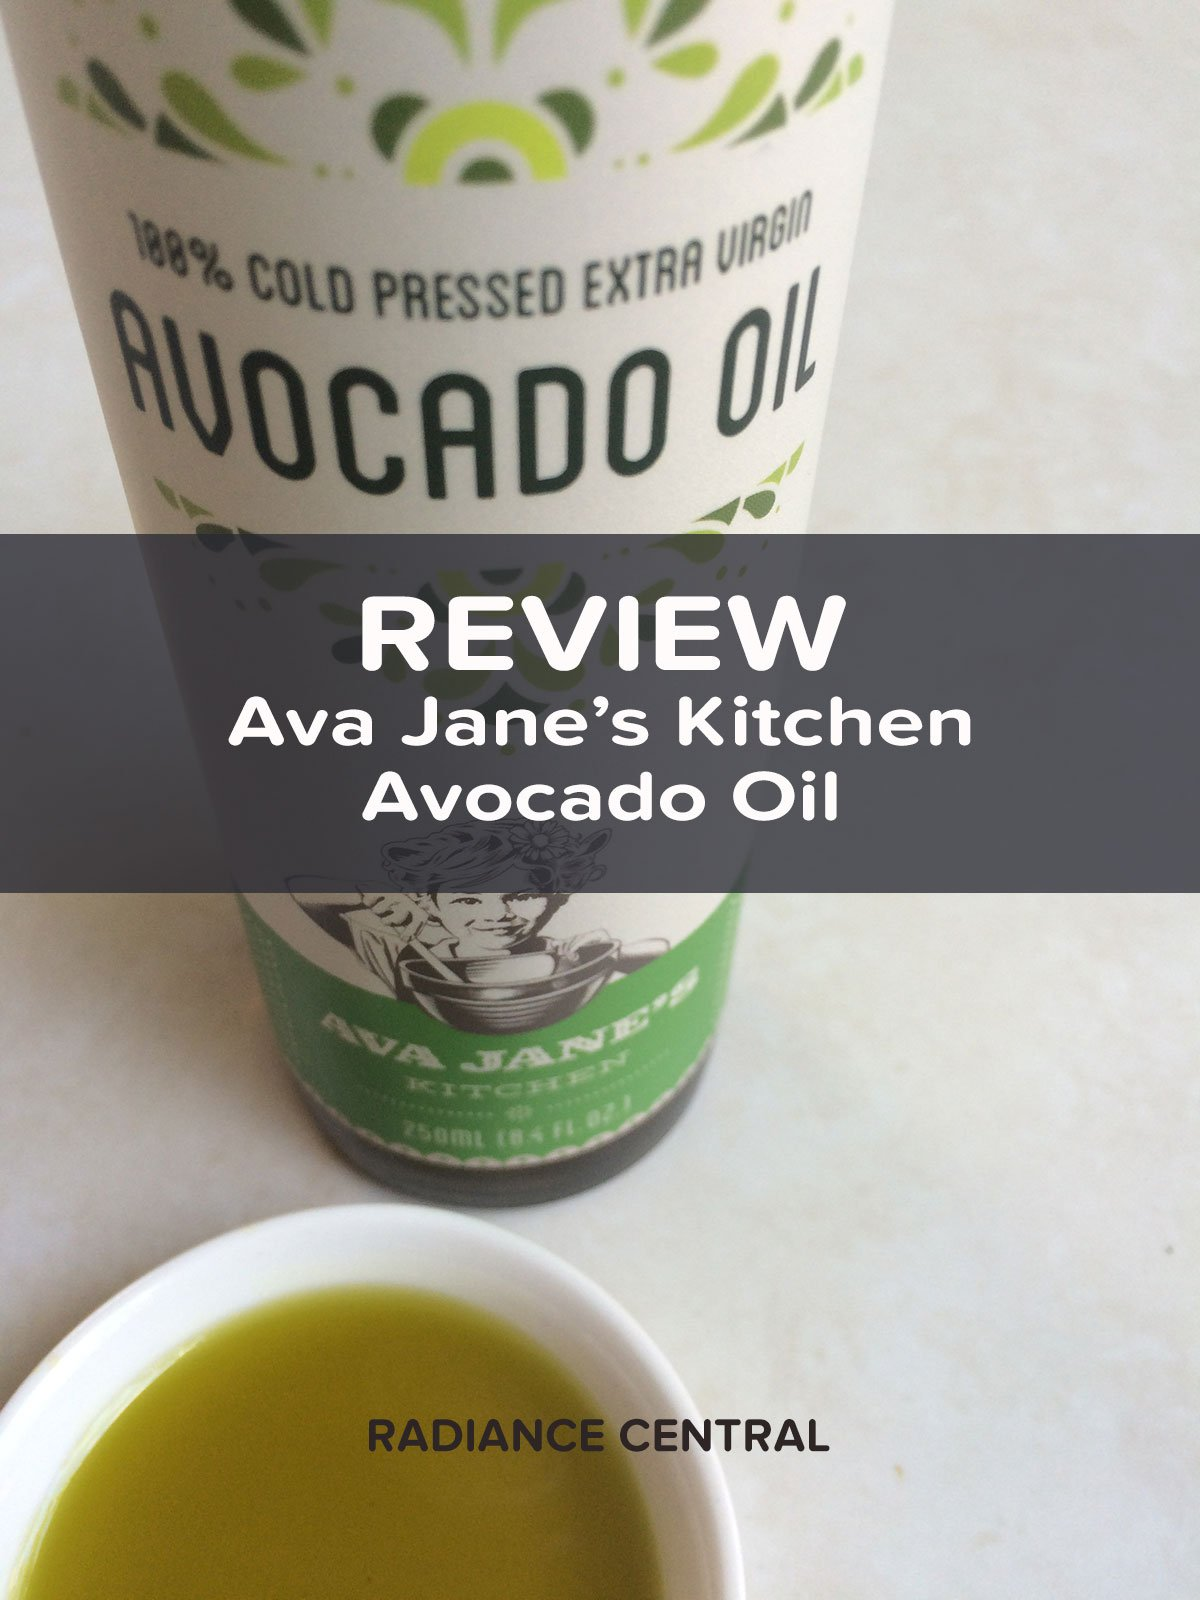 For many years I struggled finding a good quality cooing oil I liked and trusted. In came to a point where I made my own coconut oil, but even with that, I don't want everything tasting like coconuts! Then I found Ava Jane's Kitchen Avocado Oil and this is the best unfiltered, cold pressed oil on the market. Click through to learn more! | www.RadianceCentral.com